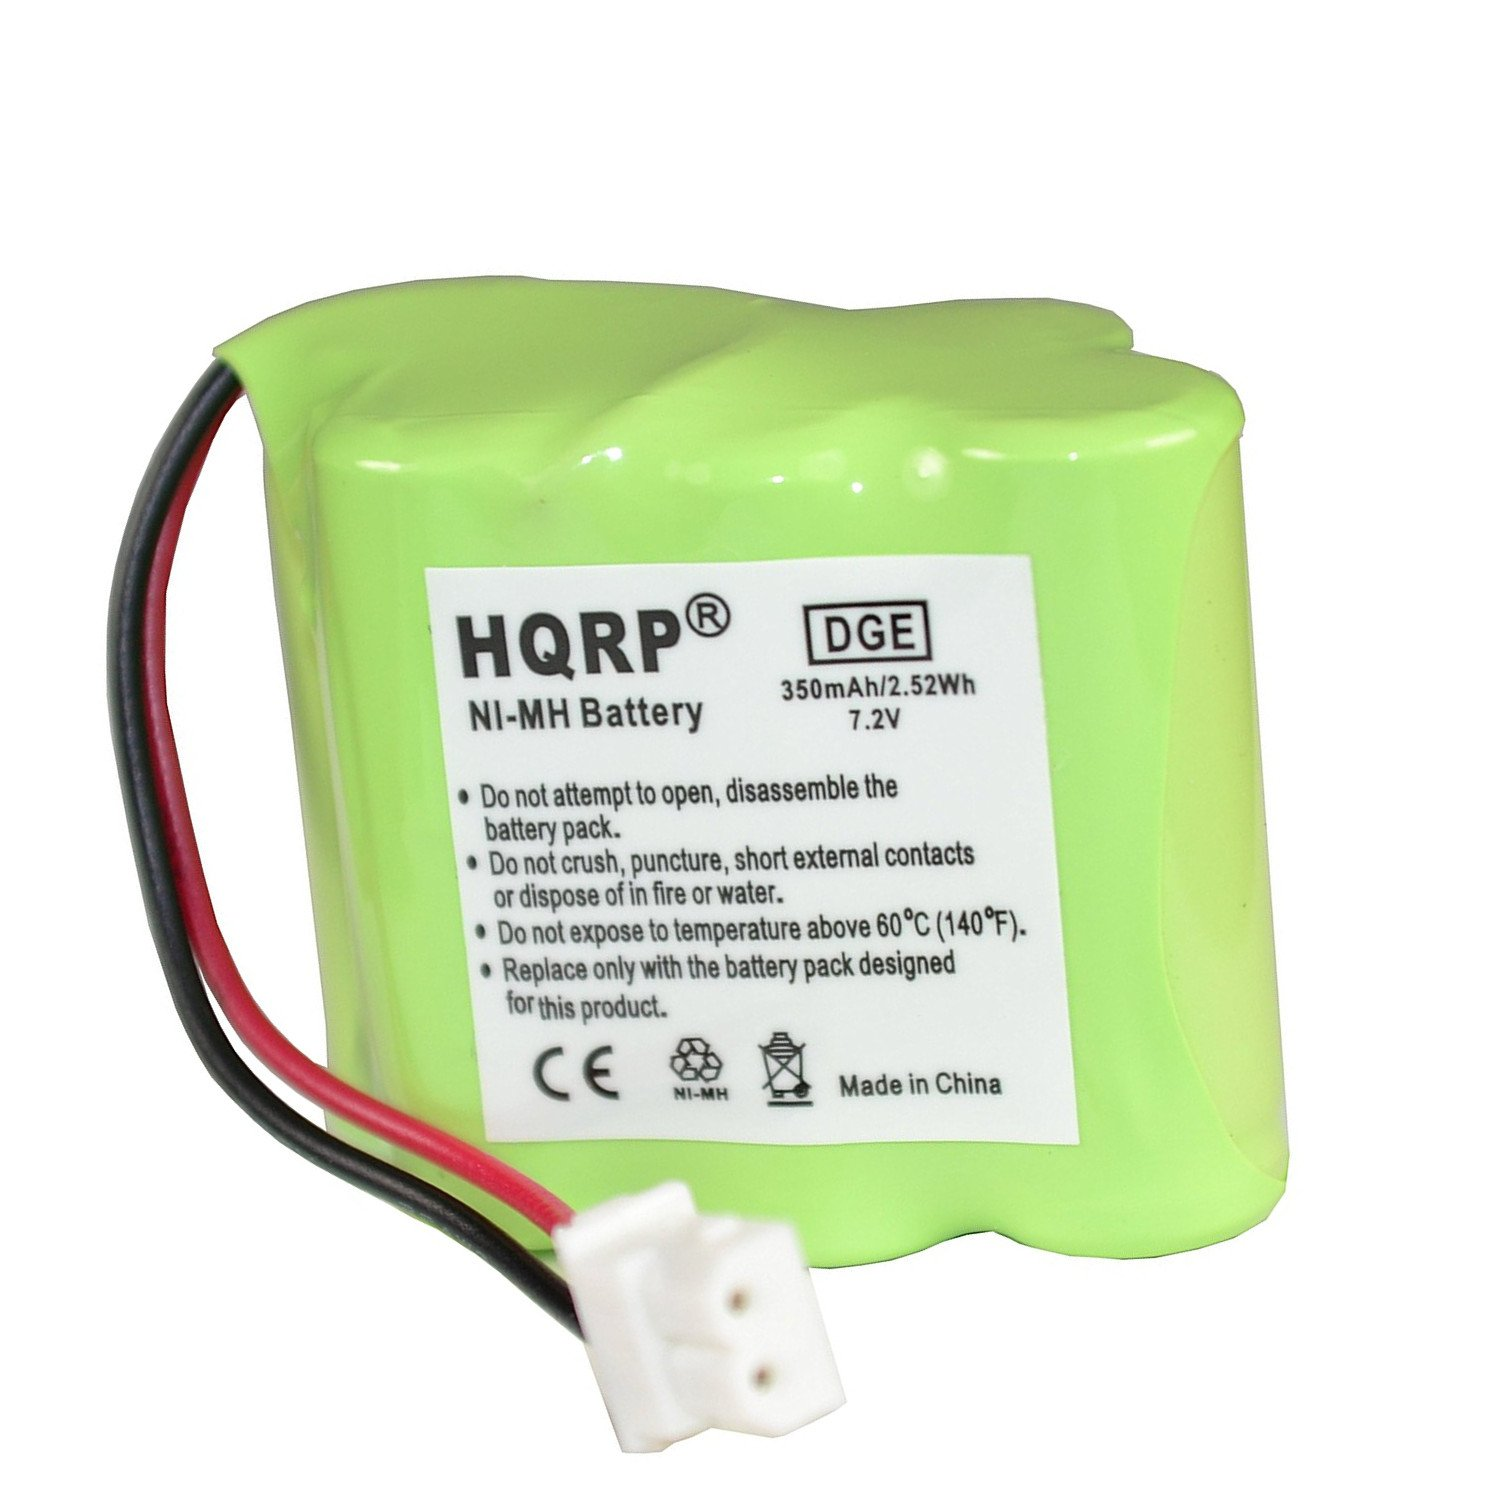 HQRP Transmitter Battery for Dt-Systems EDT SERIES Super Trainer Dog Training Collar fits EDT 100, EDT 102 + Coaster by HQRP